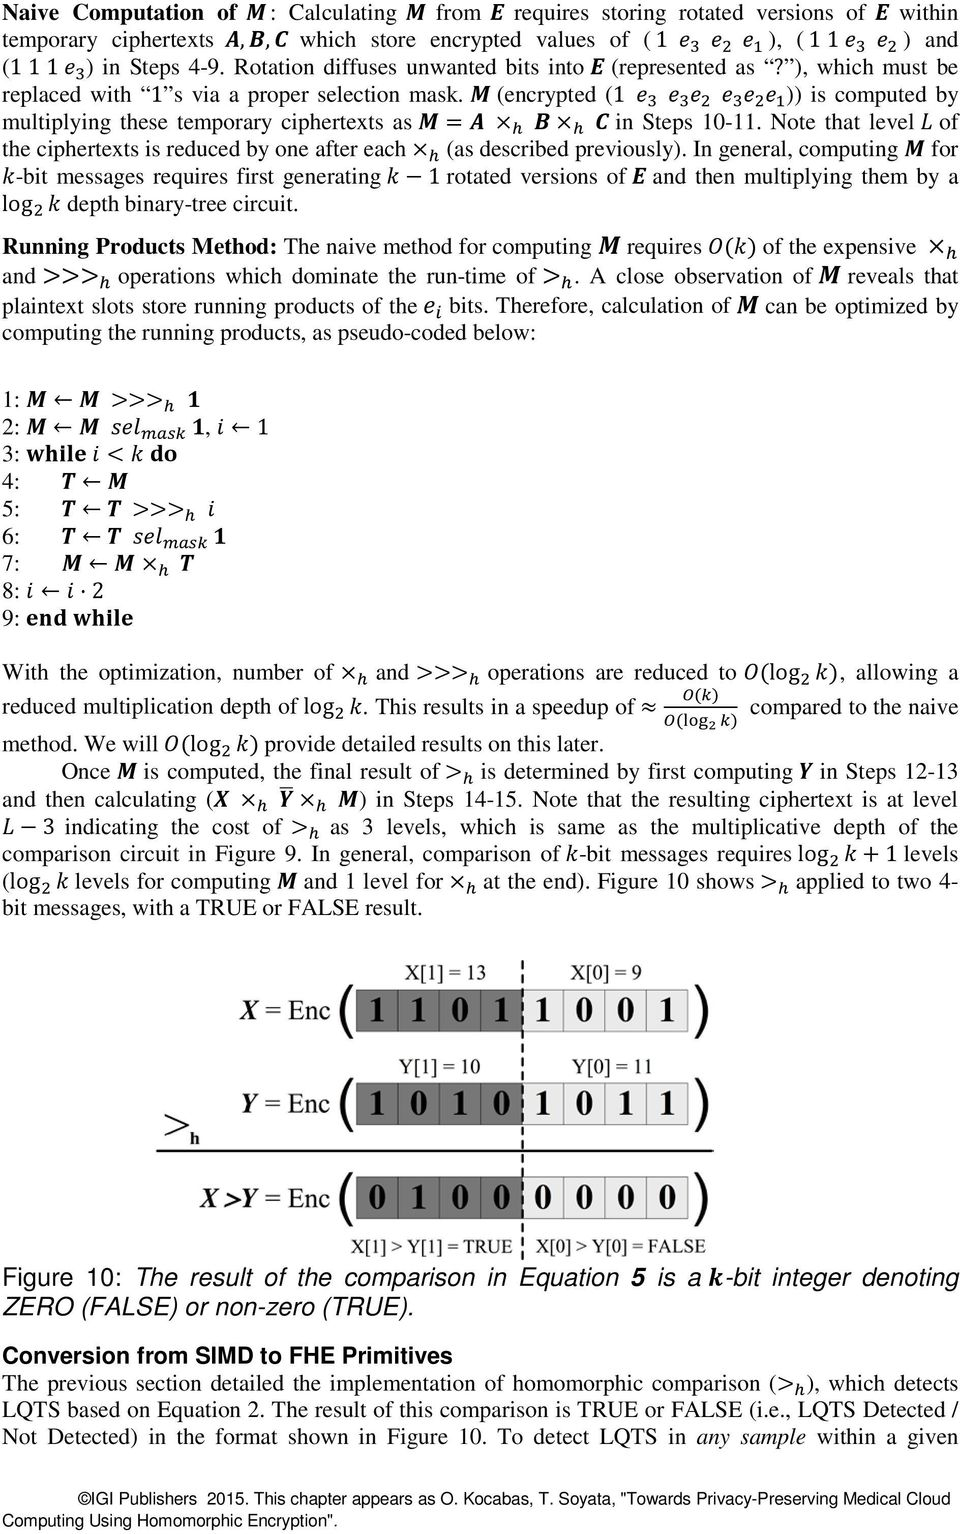 M (encrypted (1 e 3 e 3 e 2 e 3 e 2 e 1 )) is computed by multiplying these temporary ciphertexts as M = A h B h C in Steps 10-11.